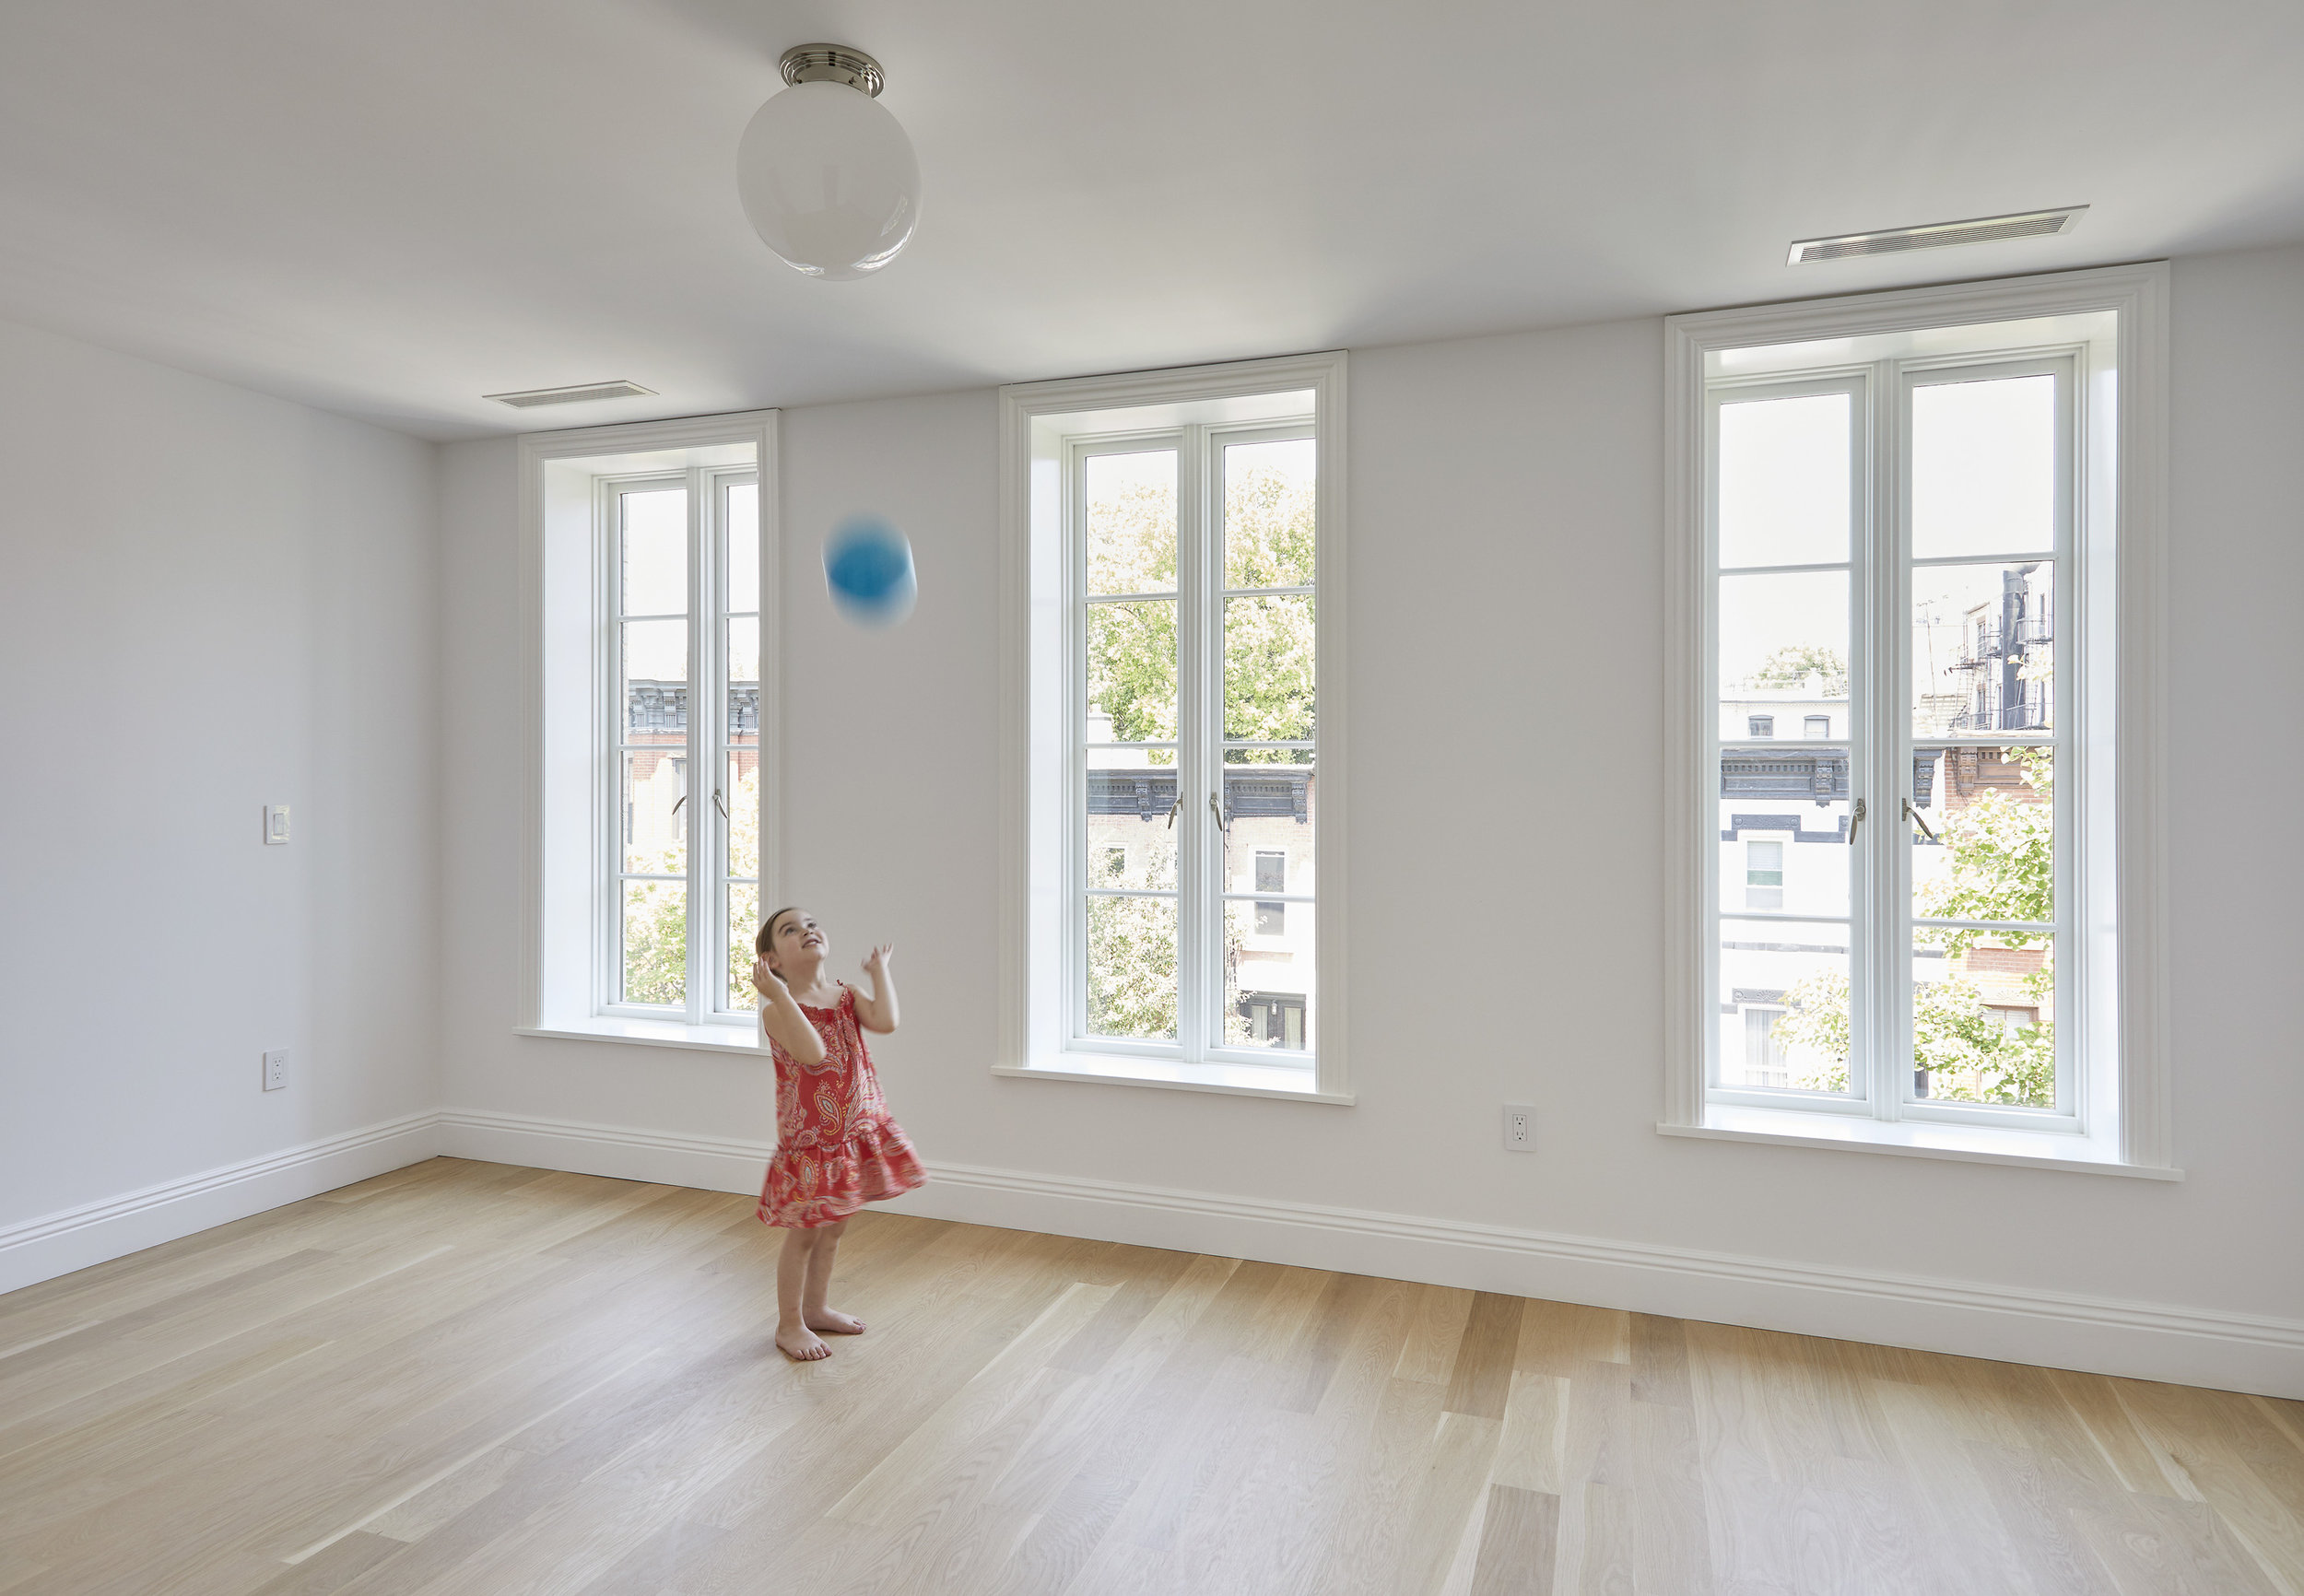 TBHCo_1706_56GarfieldPlace_127_HiRes.jpg